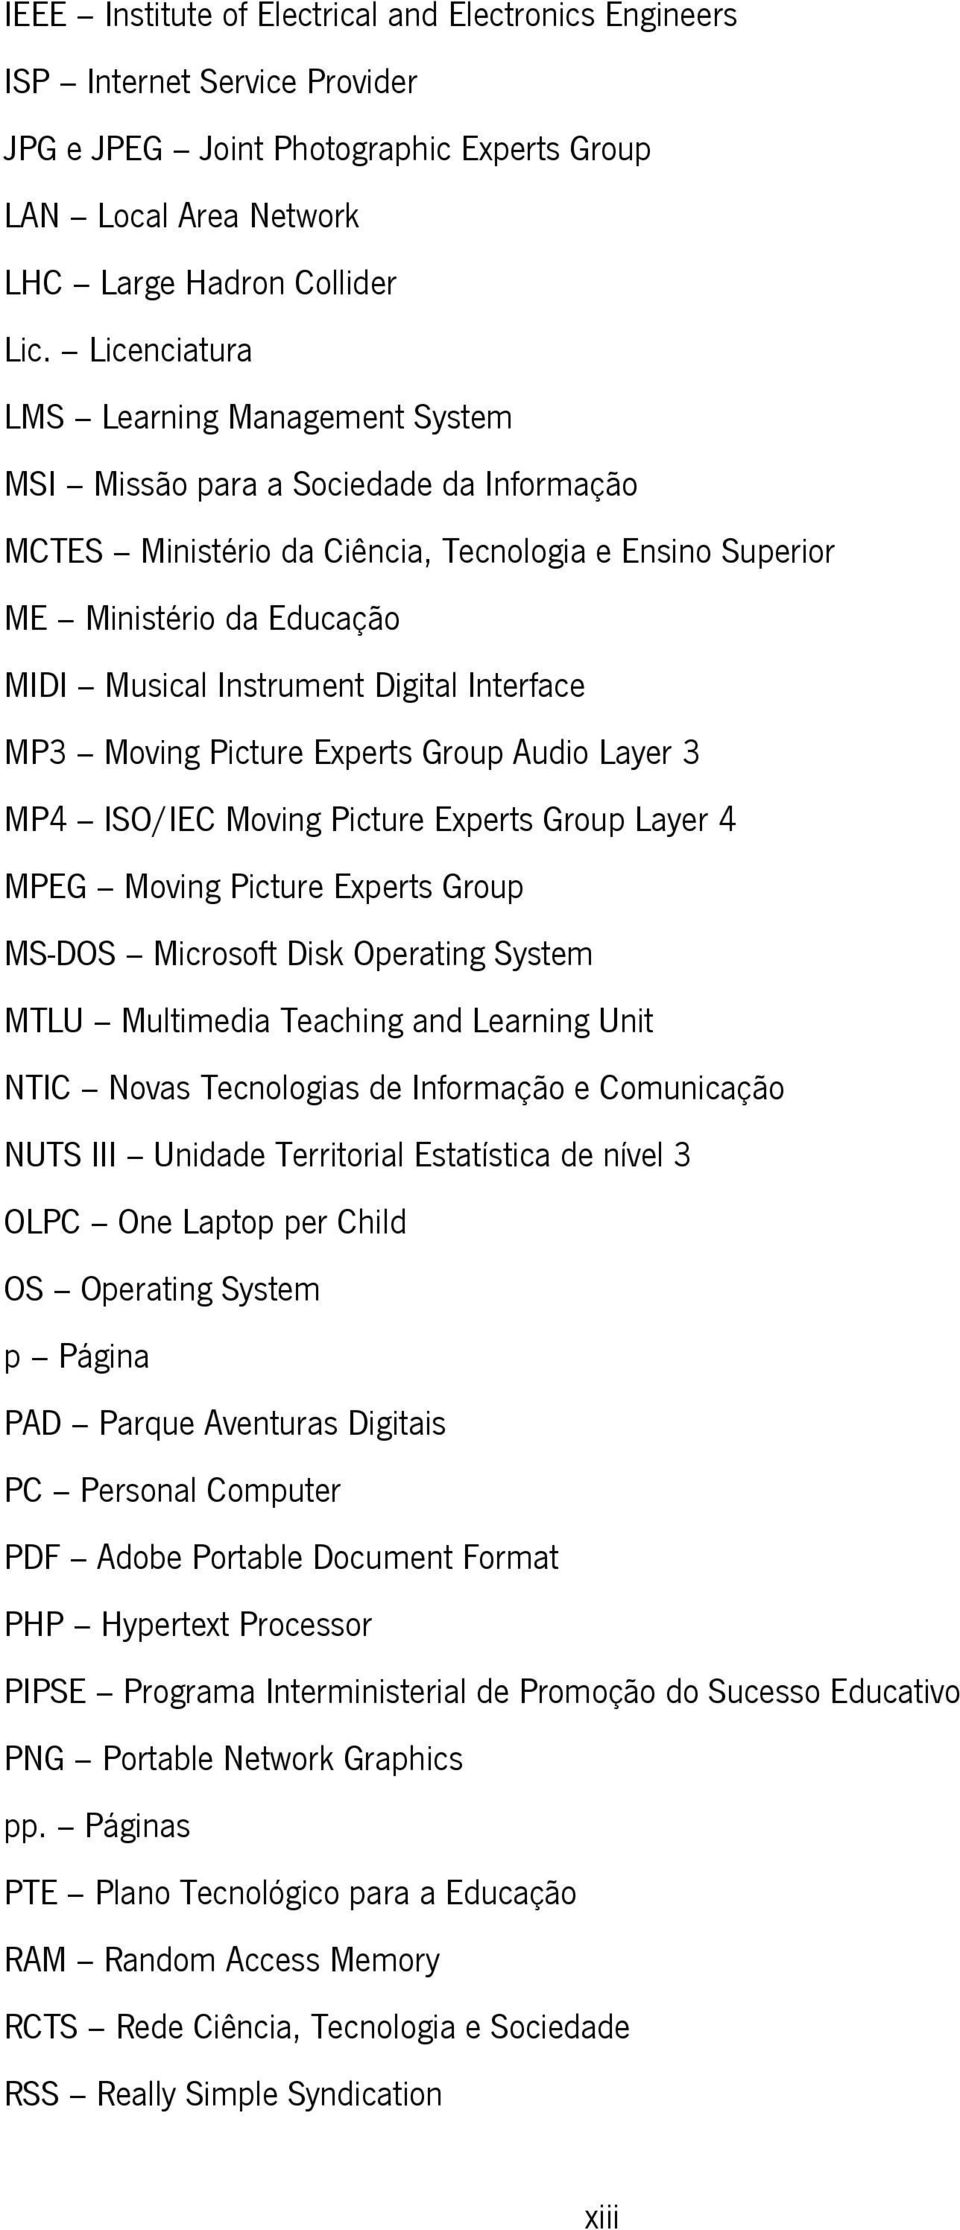 Digital Interface MP3 Moving Picture Experts Group Audio Layer 3 MP4 ISO/IEC Moving Picture Experts Group Layer 4 MPEG Moving Picture Experts Group MS-DOS Microsoft Disk Operating System MTLU